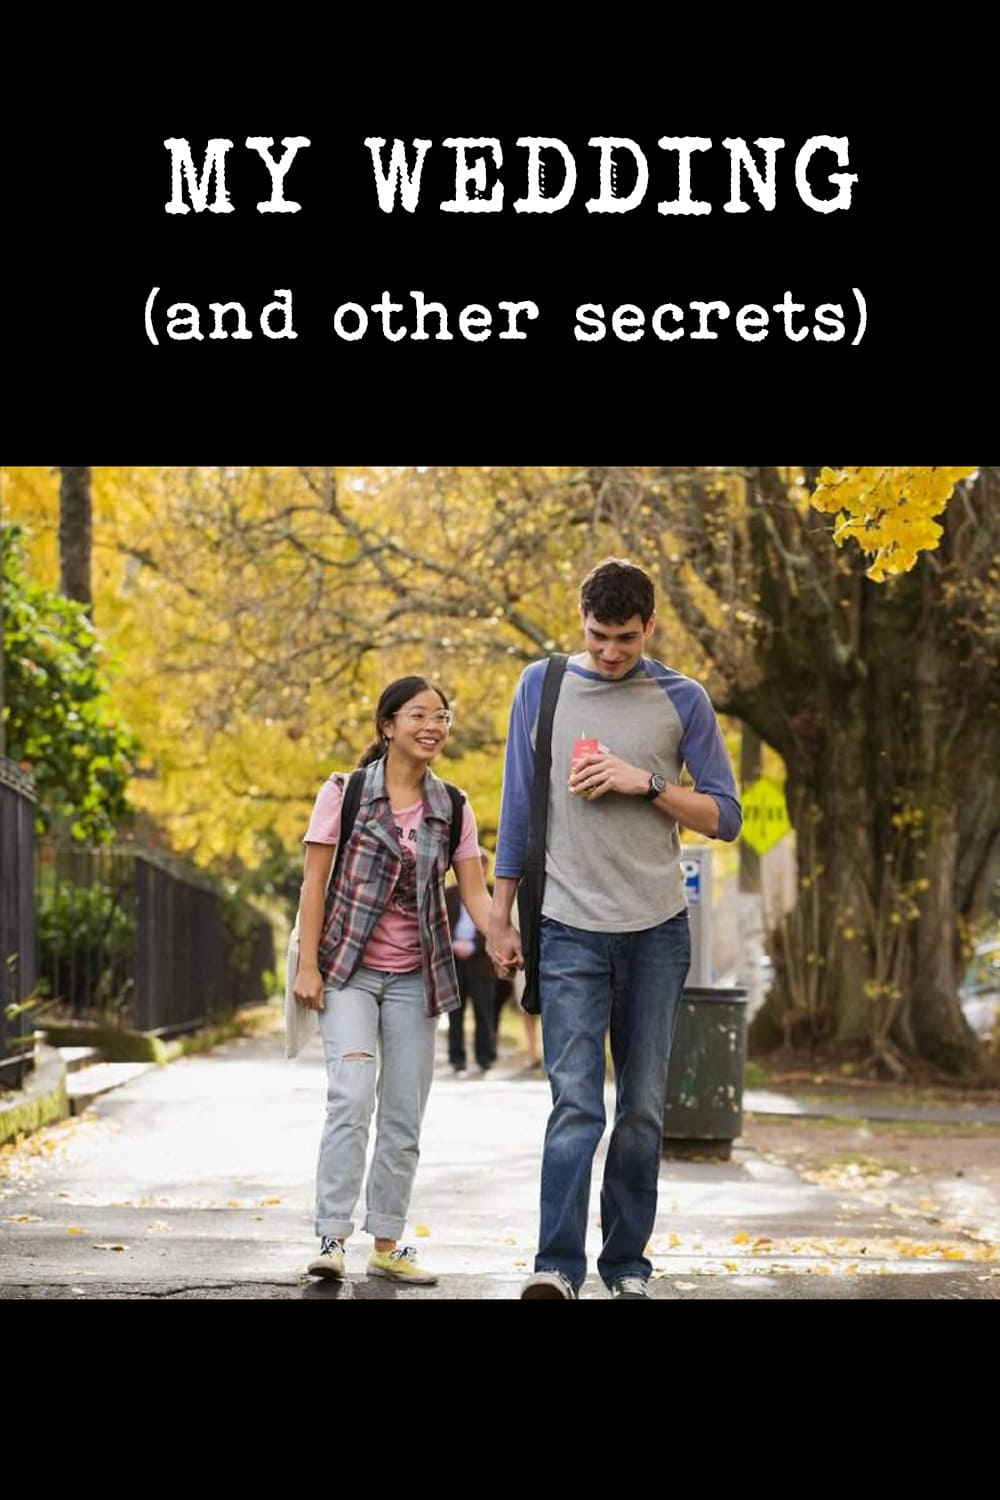 My Wedding and Other Secrets on FREECABLE TV